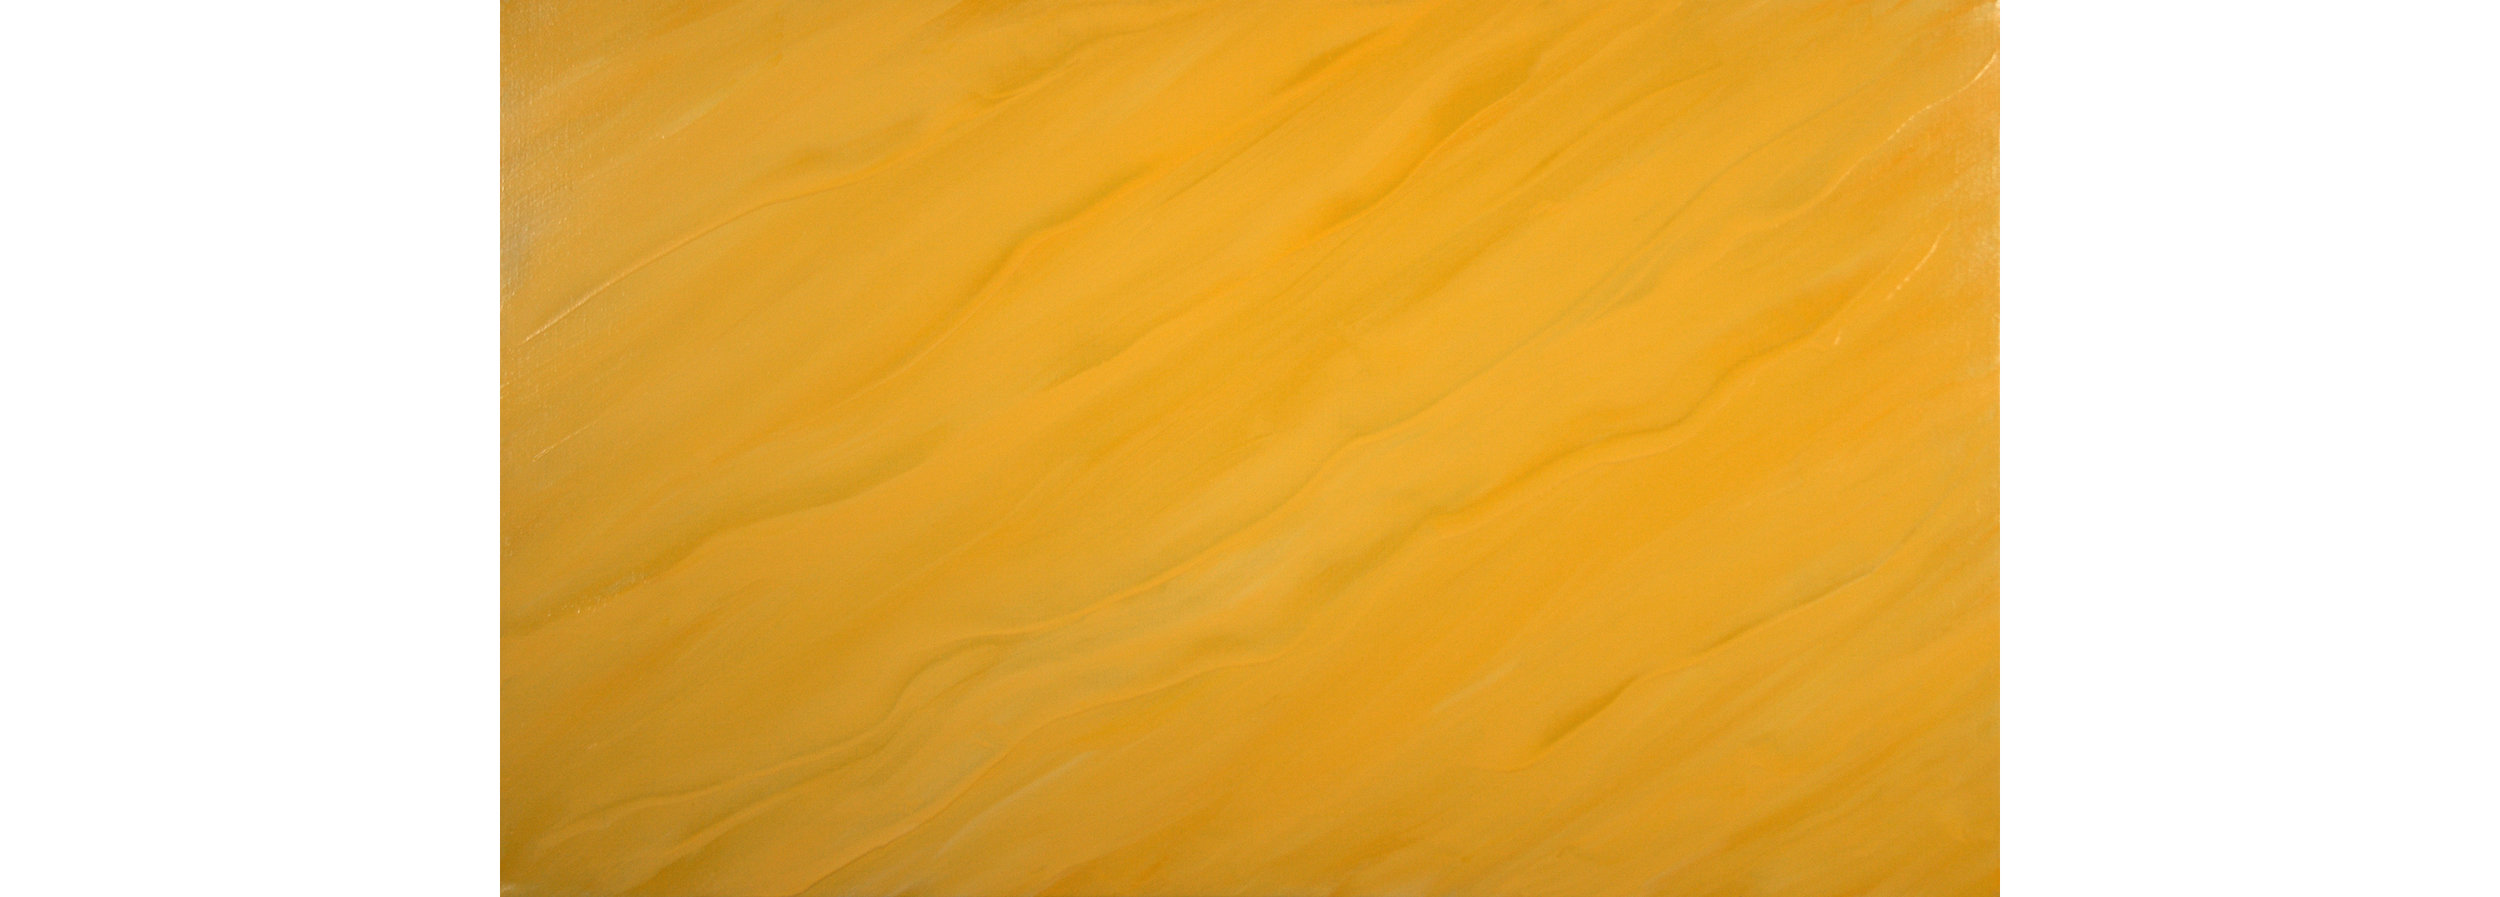 Streaming Yellow, 2015, Oil on Linen, 24 x 40 inches